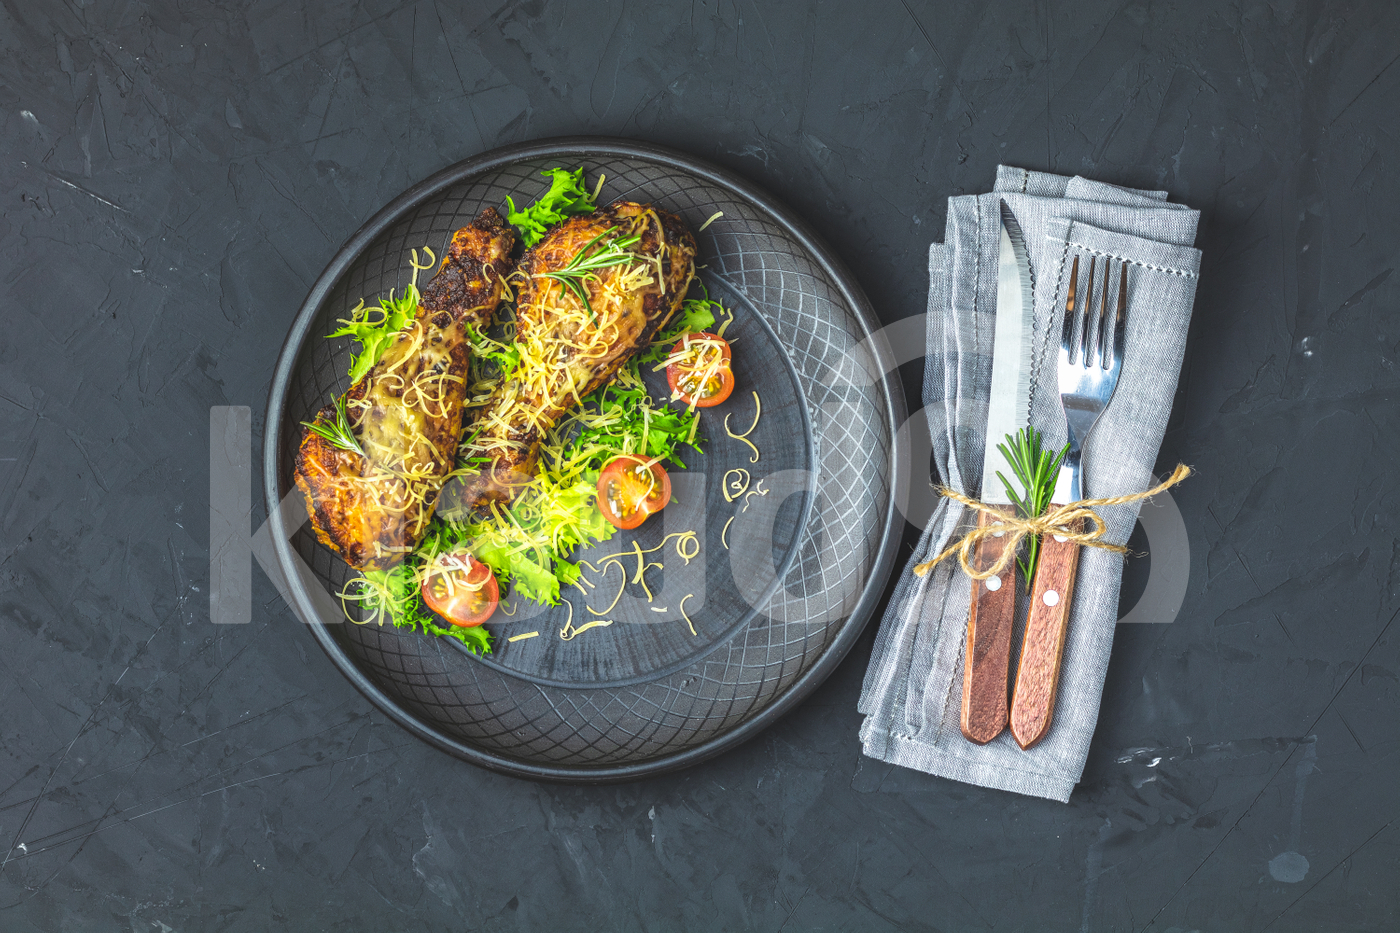 Baked chicken drumstick in a black ceramic plate with orange and rosemary